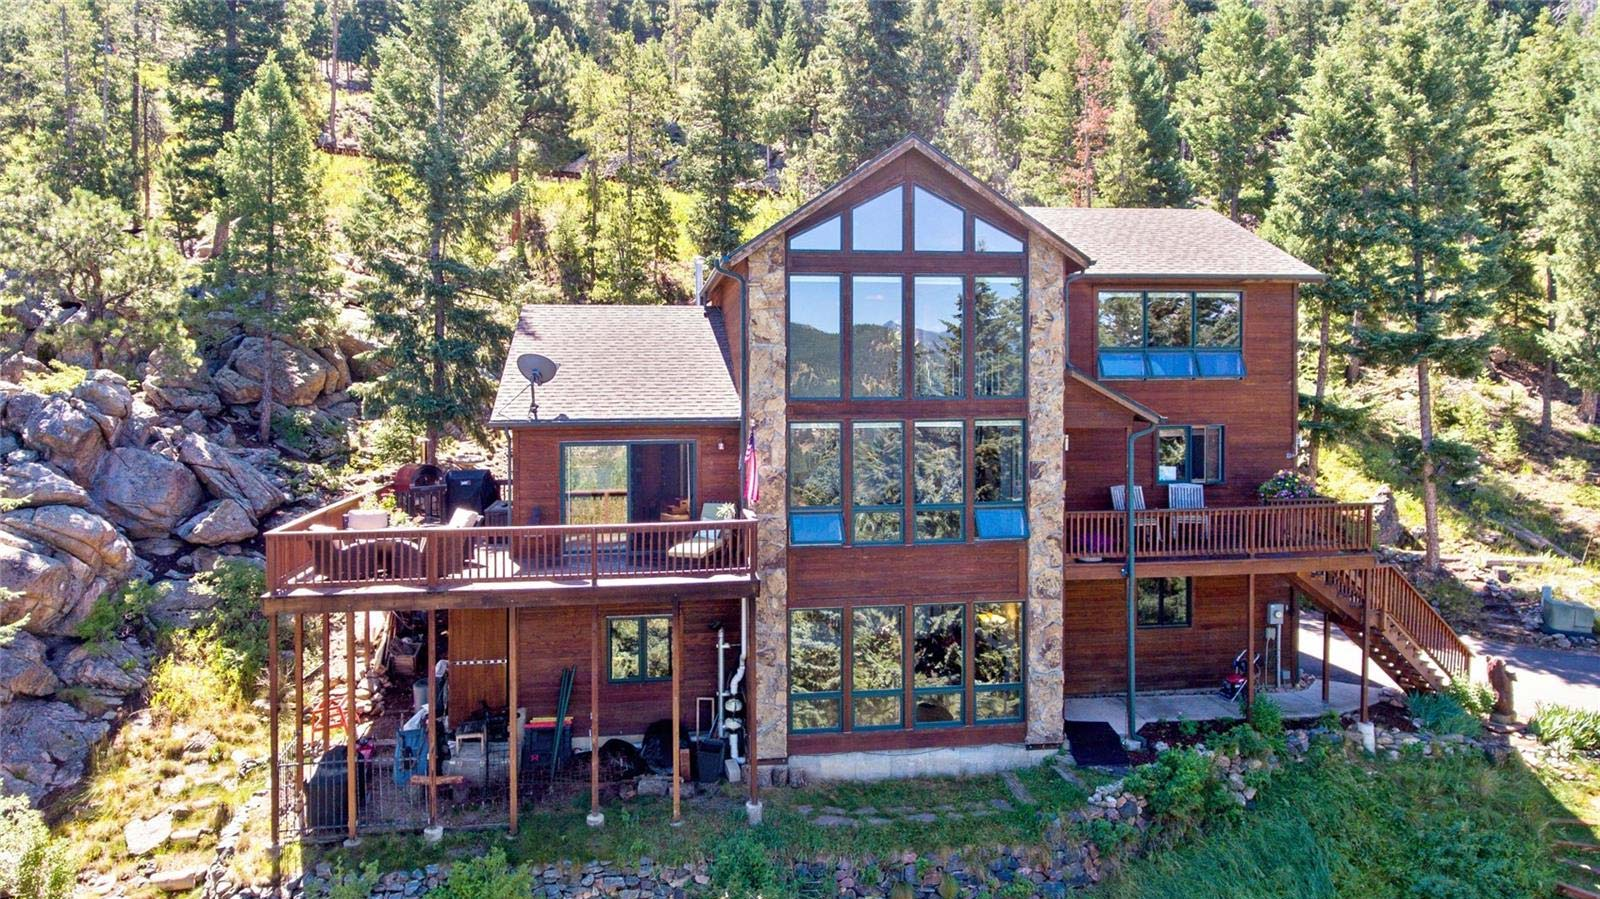 evergreen-co-homes-for-sale-in-600s-1-1